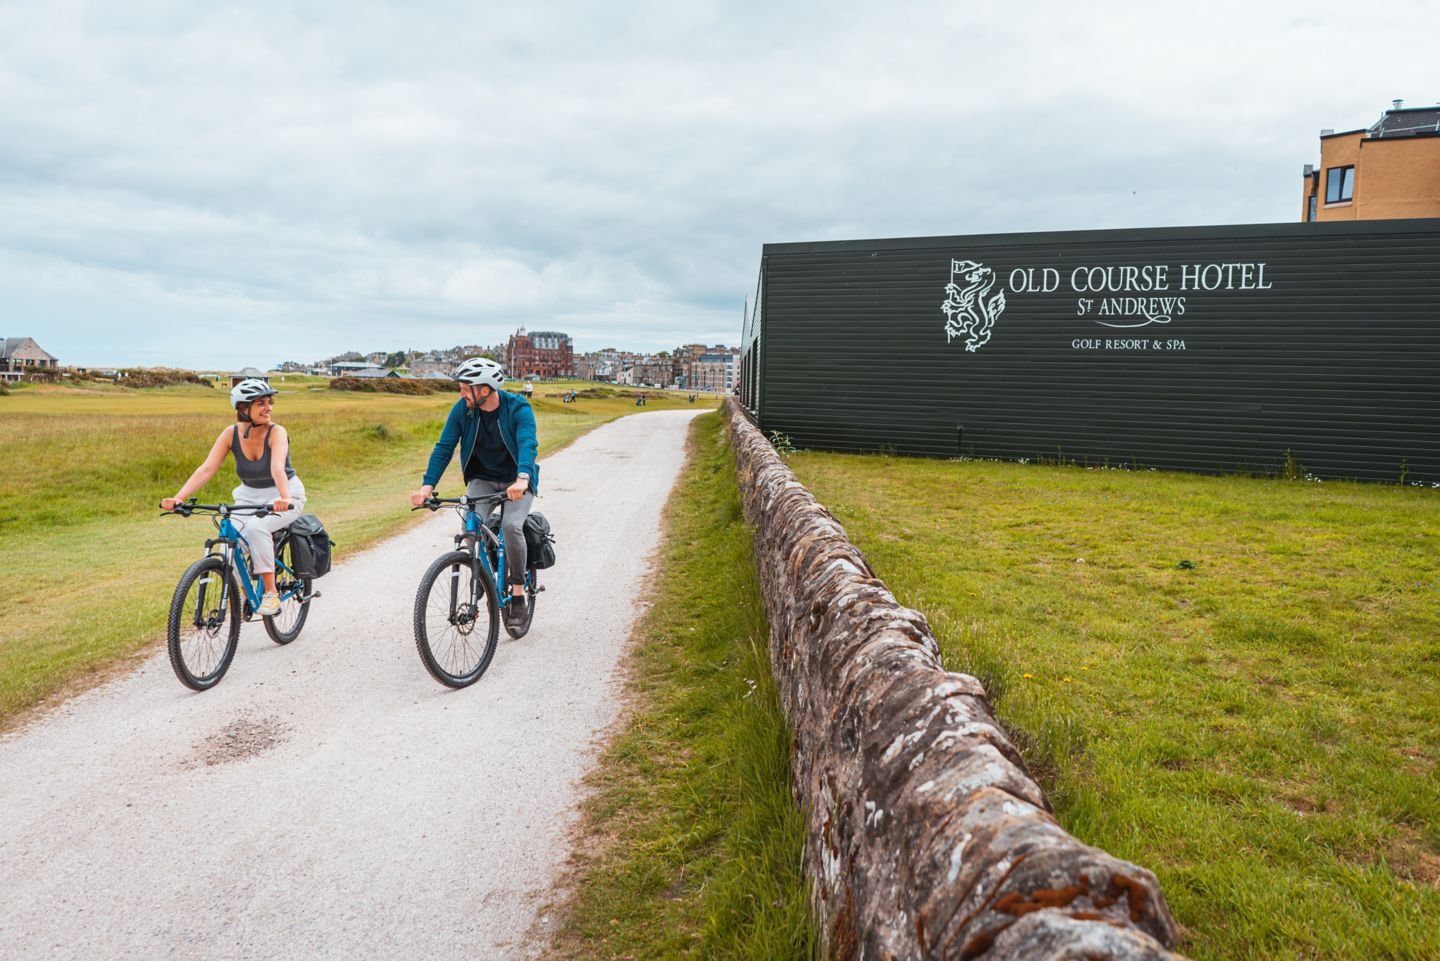 Man and woman cycling past the Green Sheds of the Old Course Hotel  in St Andrews